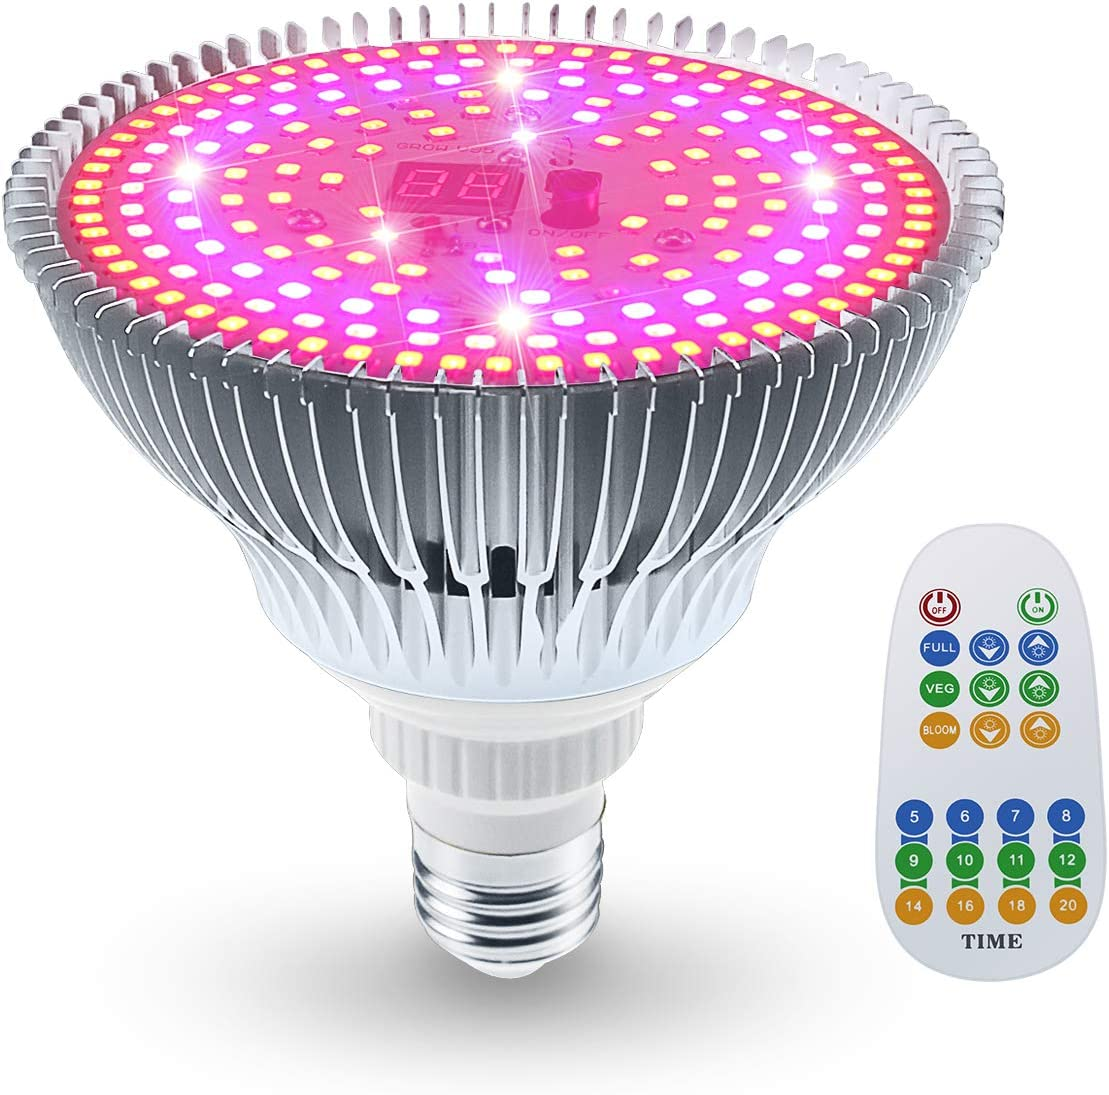 Koopower 100W LED Grow Light Bulb, Full Spectrum Remote Control Plant Lamp 3 Mode Grow Light with Timer for Hydroponic Greenhouse Indoor Plants, Flowers, Vegetables Growing E26 Base,186 LEDs